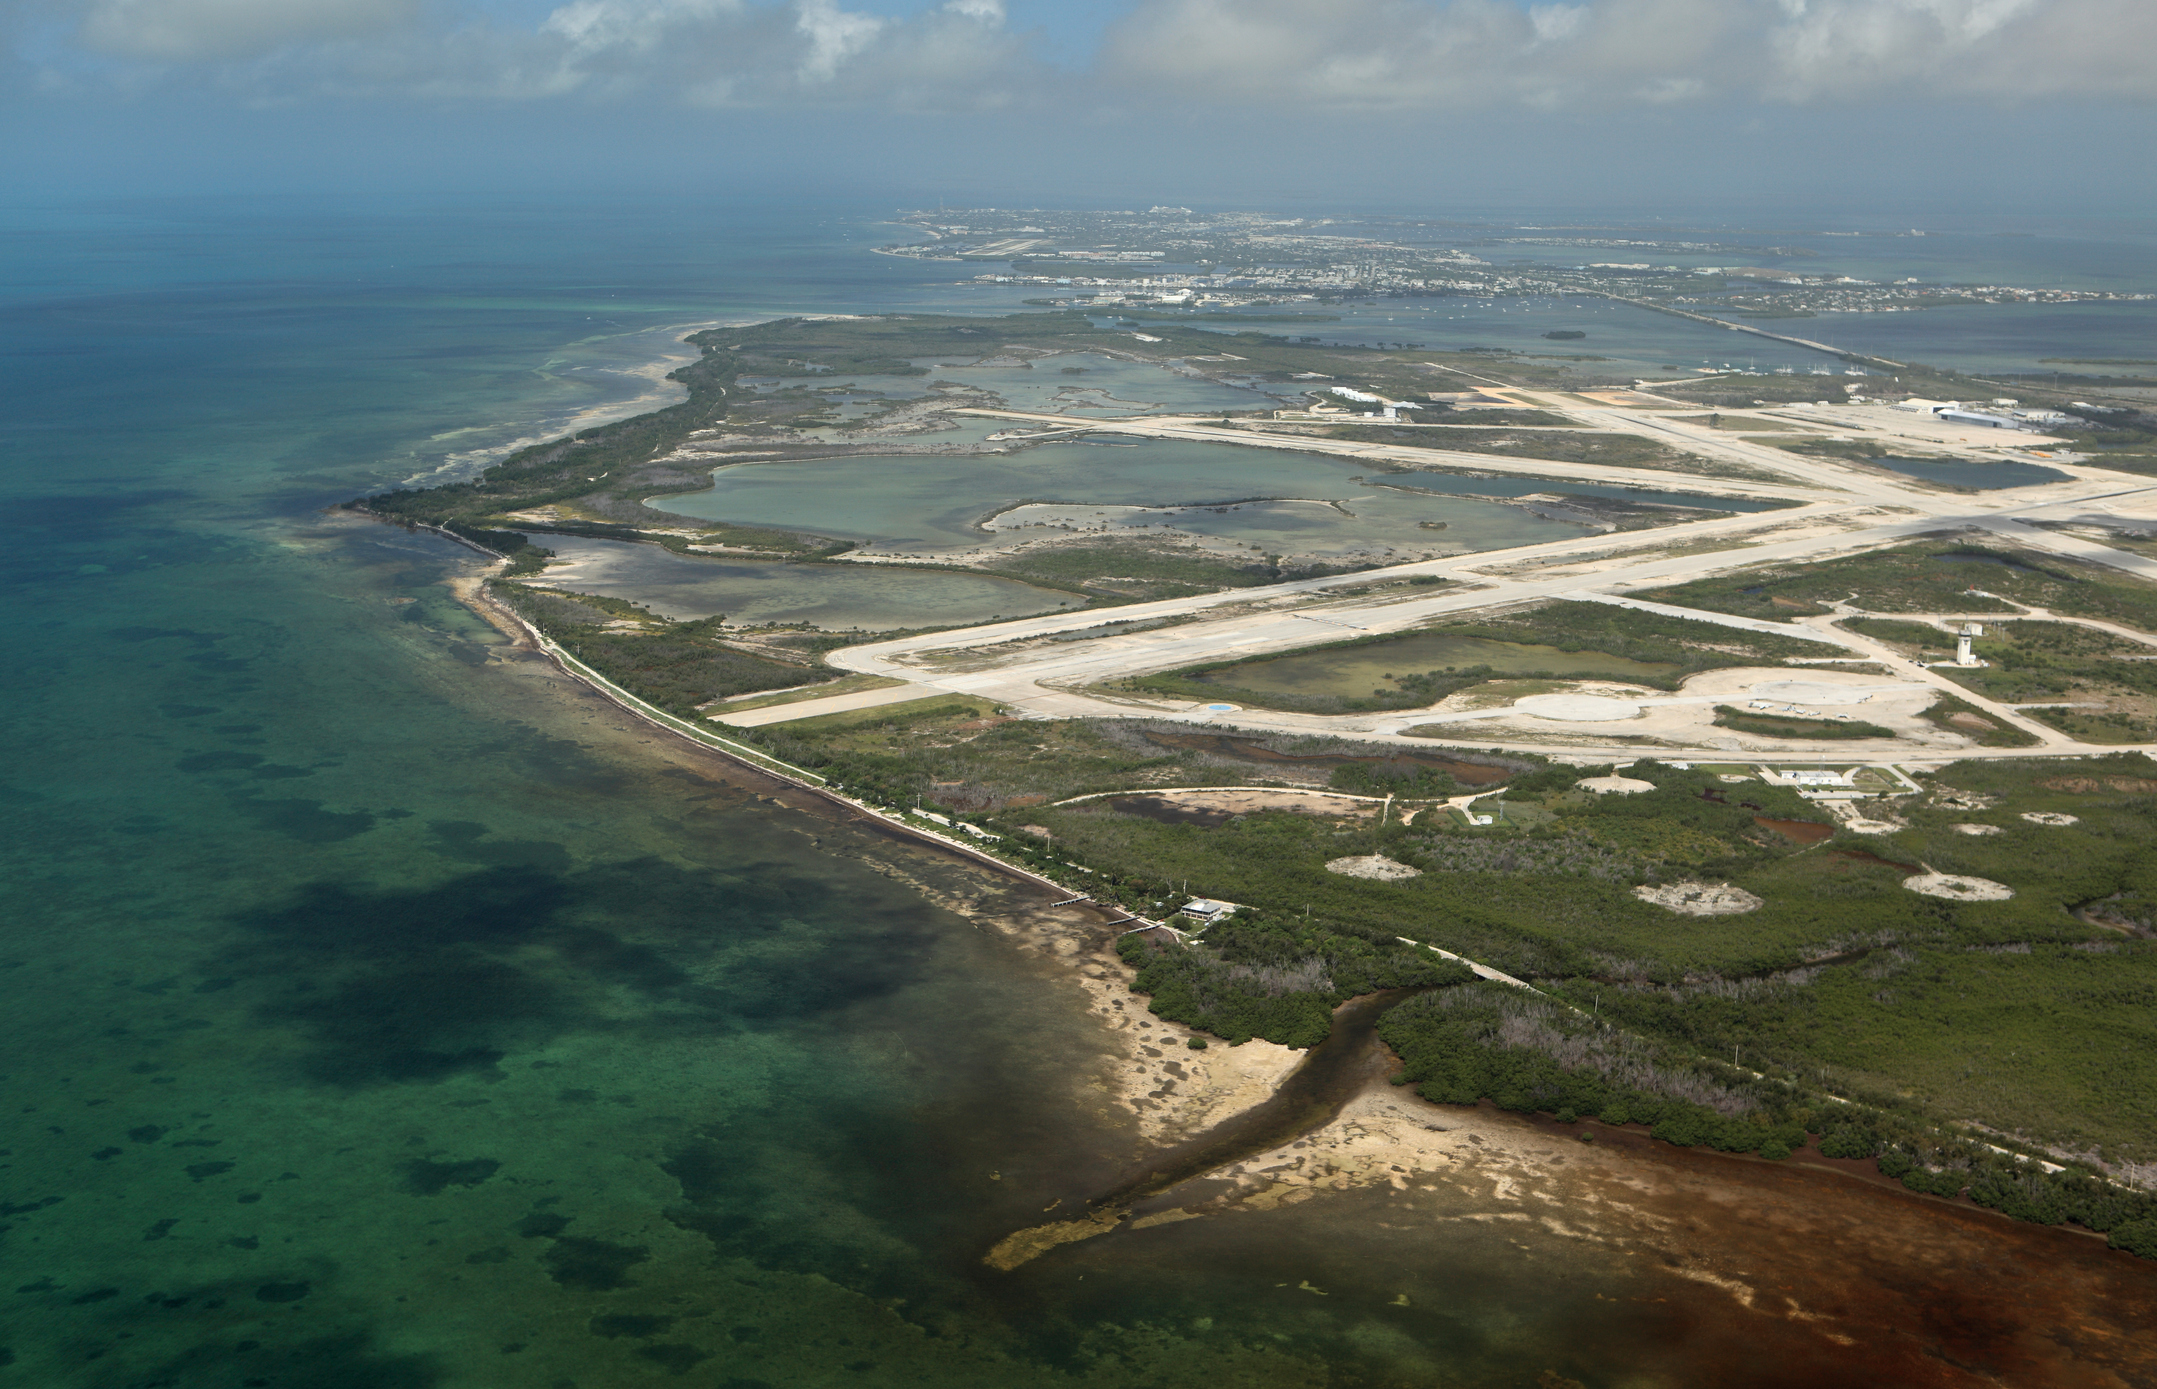 Aerial photo of Naval Air Station in Key West, Florida.